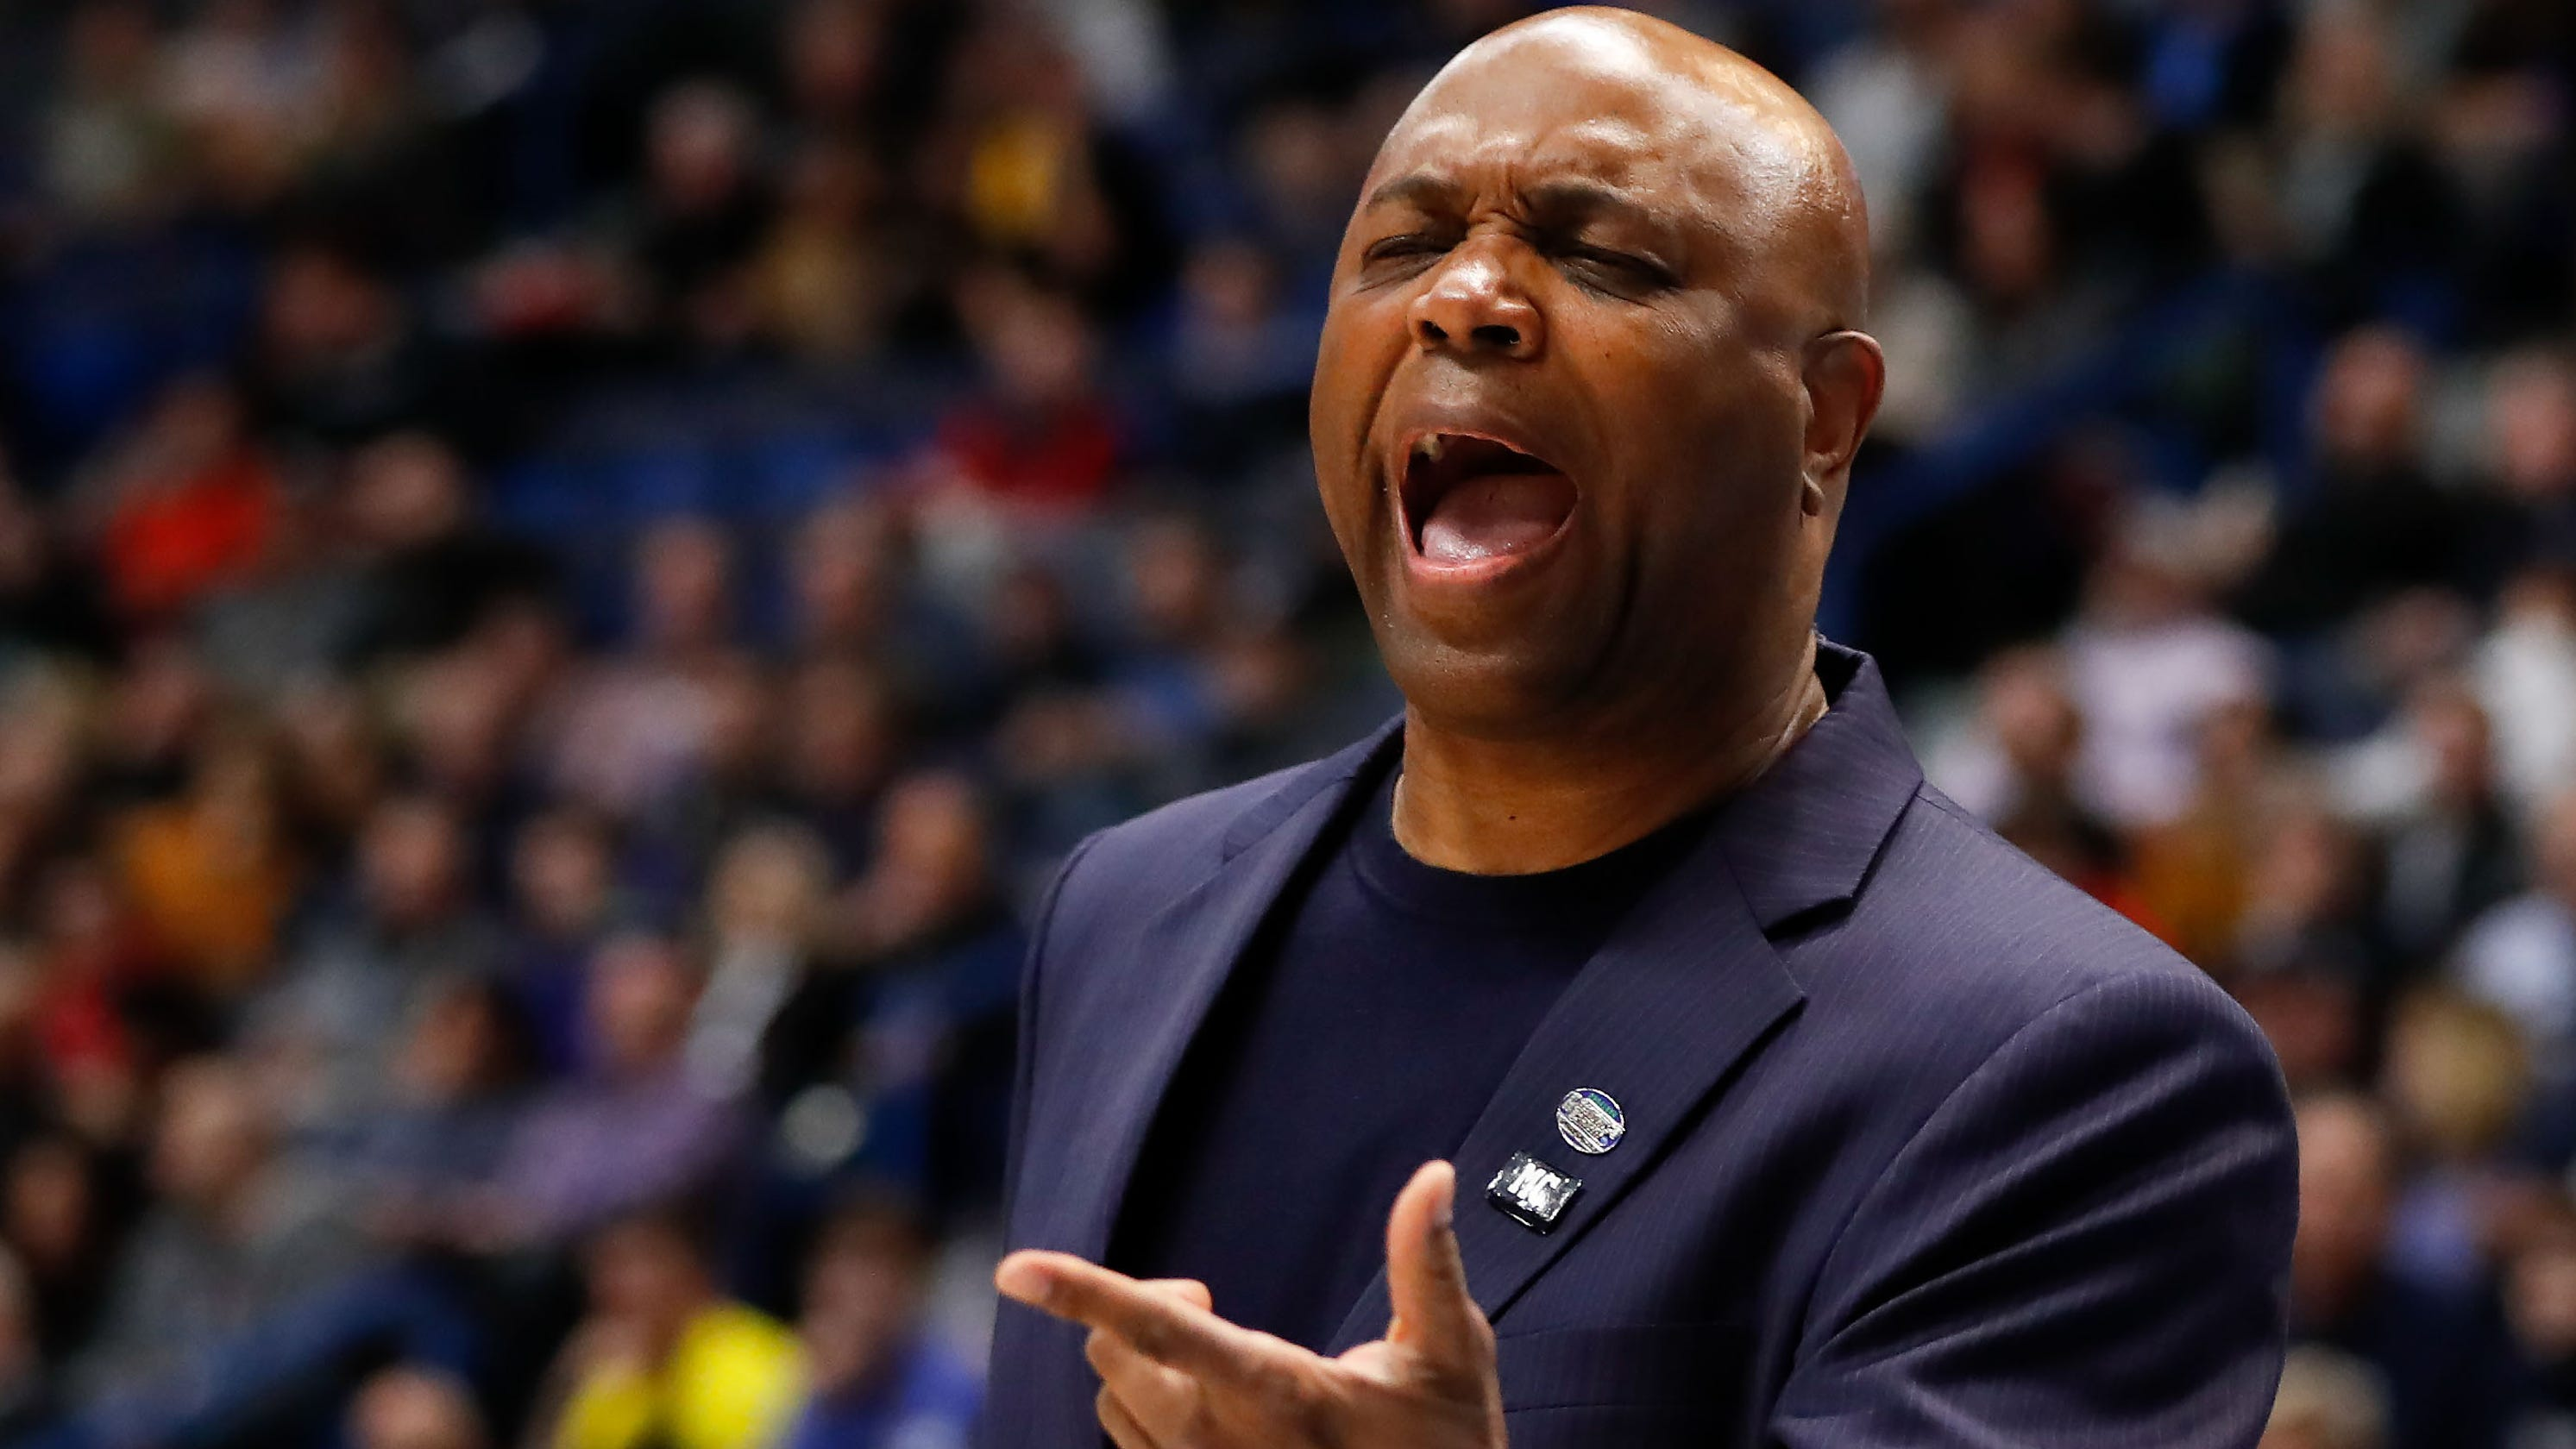 Florida State coach Leonard Hamilton gets $225,000 bonus for NCAA win over Murray State